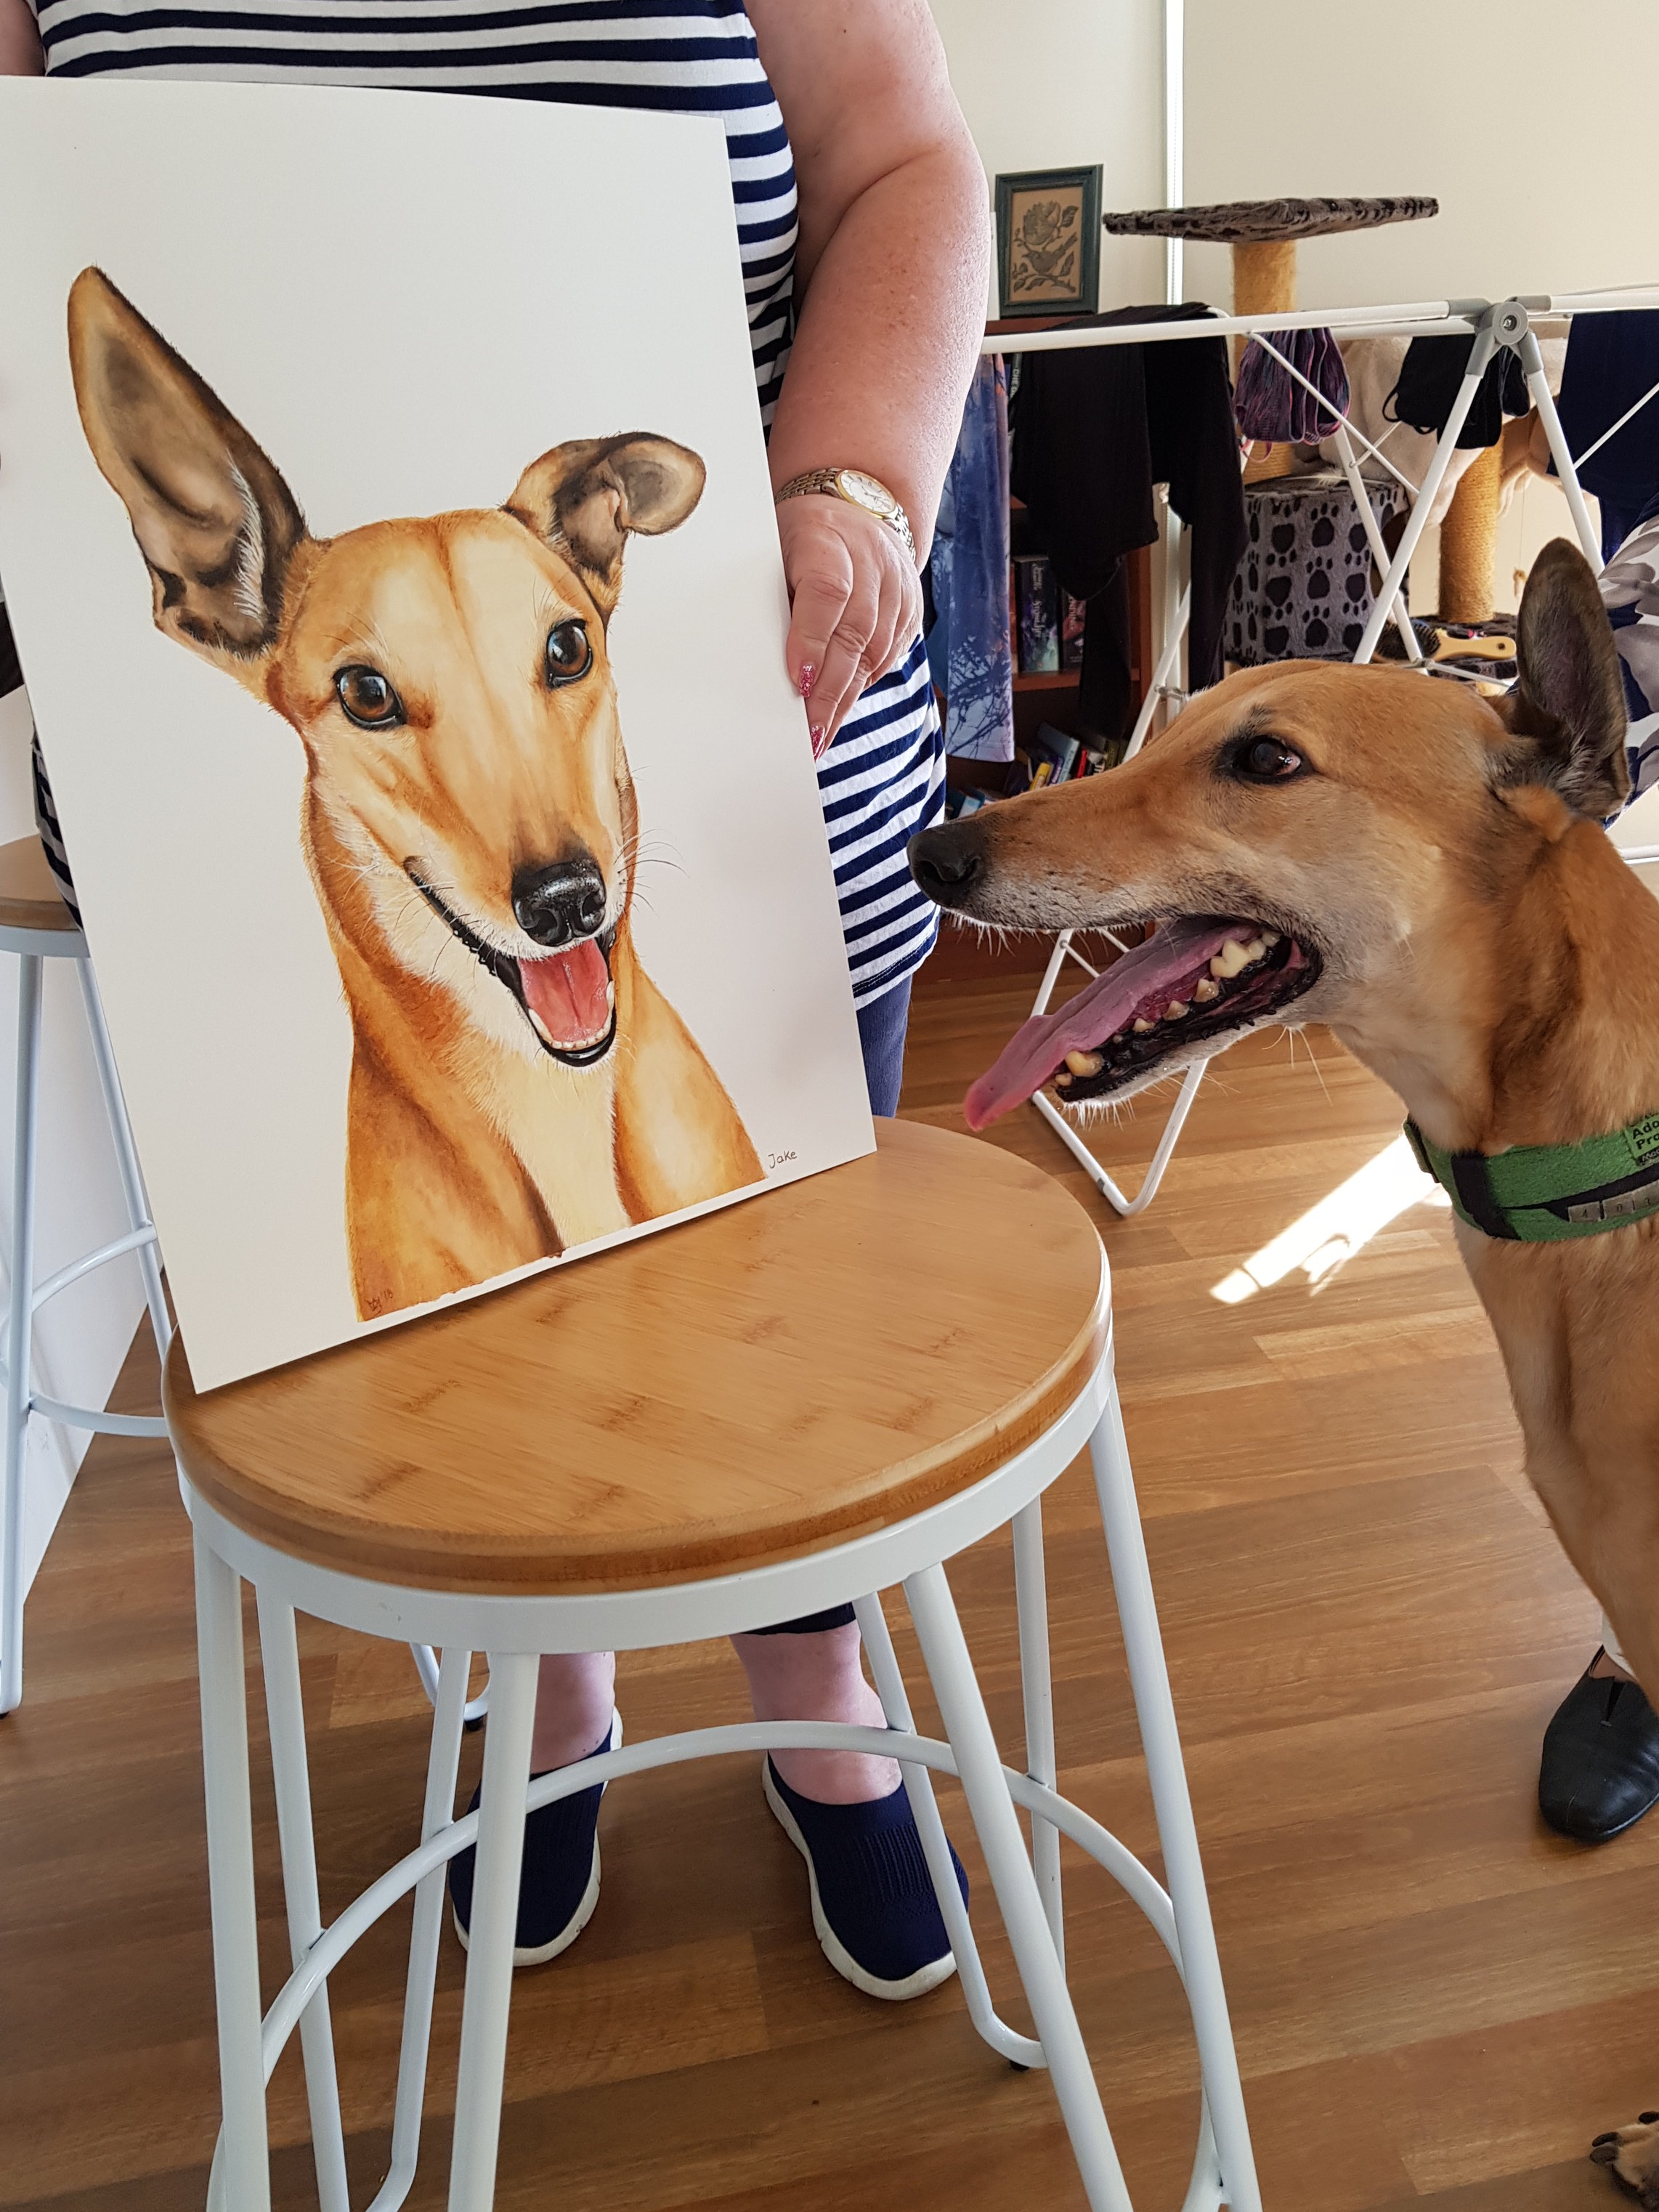 """""""I would thoroughly recommend Zoe to anyone looking to get a portrait of their beloved pet.    Zoe has accurately captured all of my much much loved Greyhound's features in the portrait. She has also made sure the portrait gives a great sense of Jake's happy playful spirit. Family and friends have commented how beautiful the work is and I must say I love it and will cherish it forever.    The process was simple just send some photos to Zoe and she does the rest. Zoe is so pleasant to deal with. She asks about your pet so as the portrait picks up the characteristics you want. She regularly sends updates with photos of progress. Along the way you can input if you wish. All in all a wonderful experience and I wouldn't hestitate to ask Zoe to paint a portrait of any other pet I may own."""" -  Merryn and Jake, Alphington"""